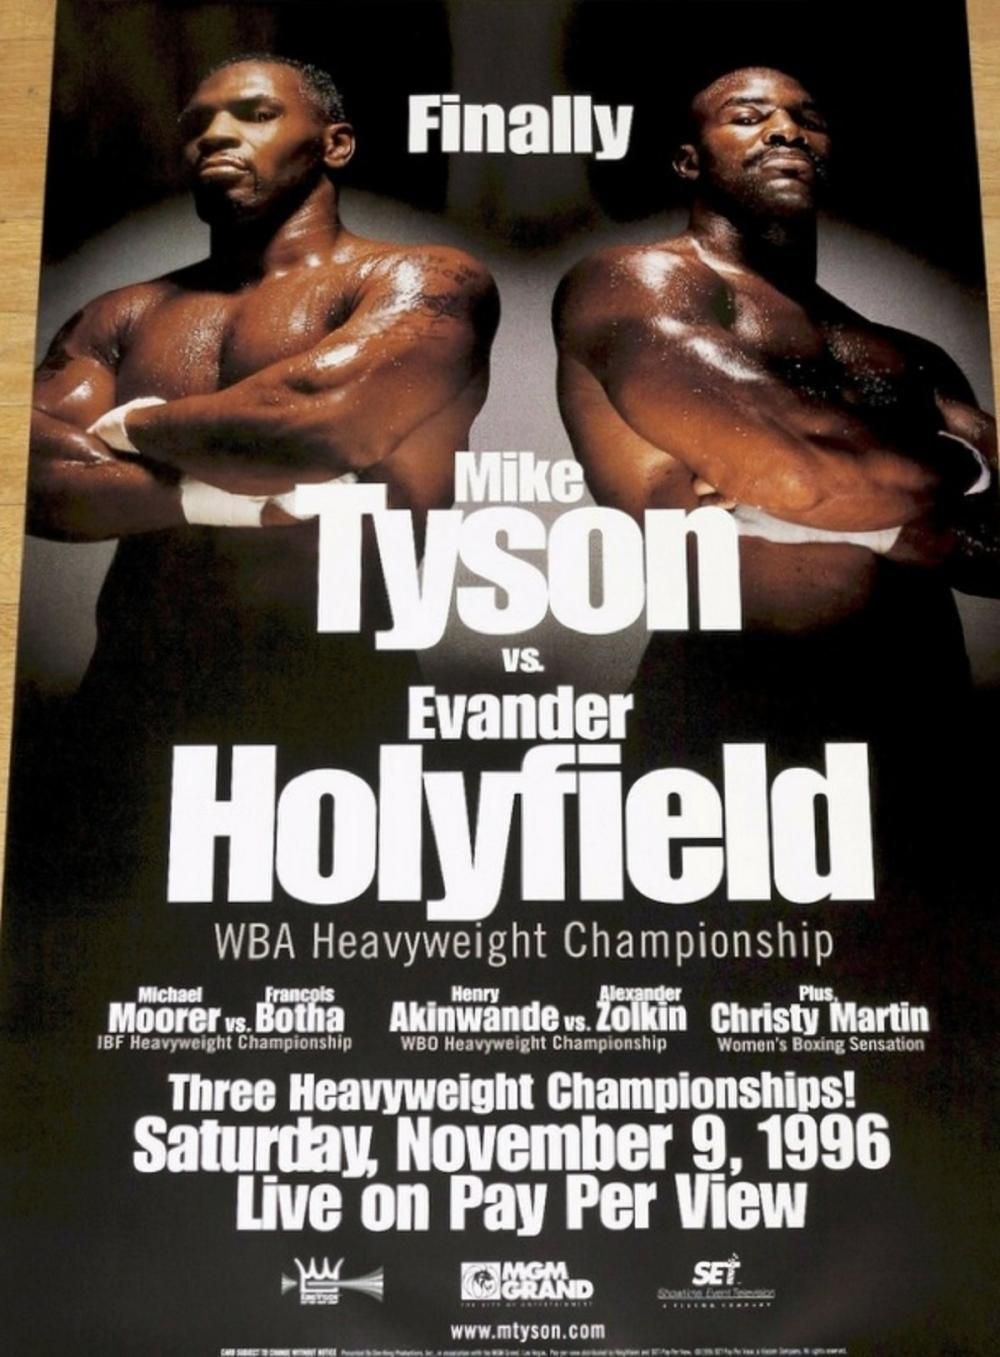 Mike Tyson Vs Evander Holyfield FIGHT!